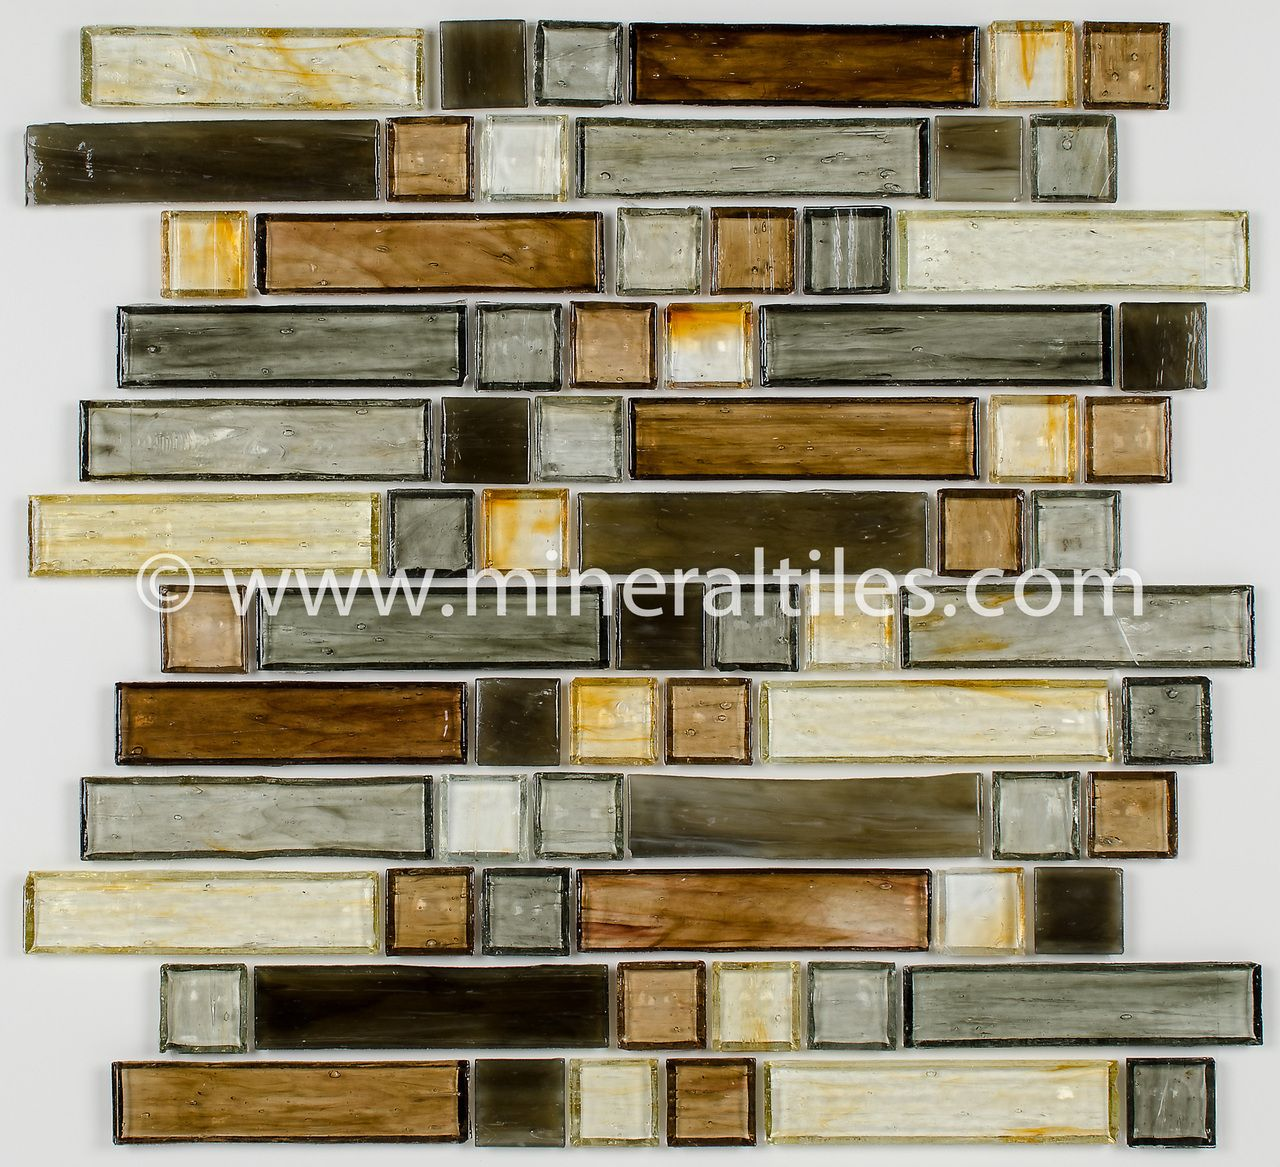 Stained Glass Mosaic Tile Olive Mixed Tile Stained Glass Tile Mosaic Tile Backsplash